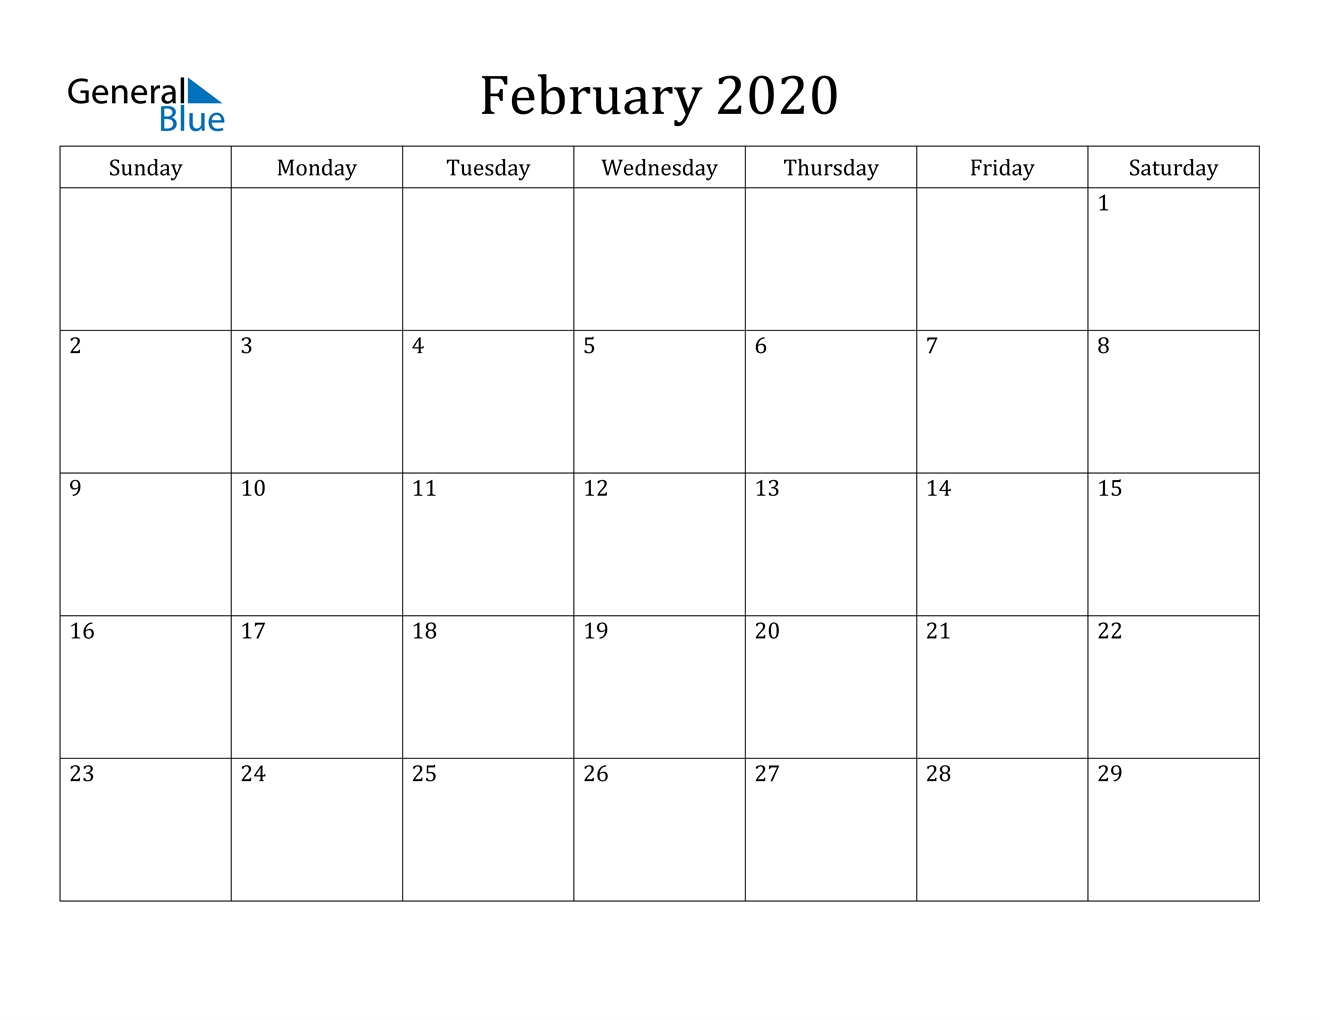 December 2021 January February 2020 Calendar For Office